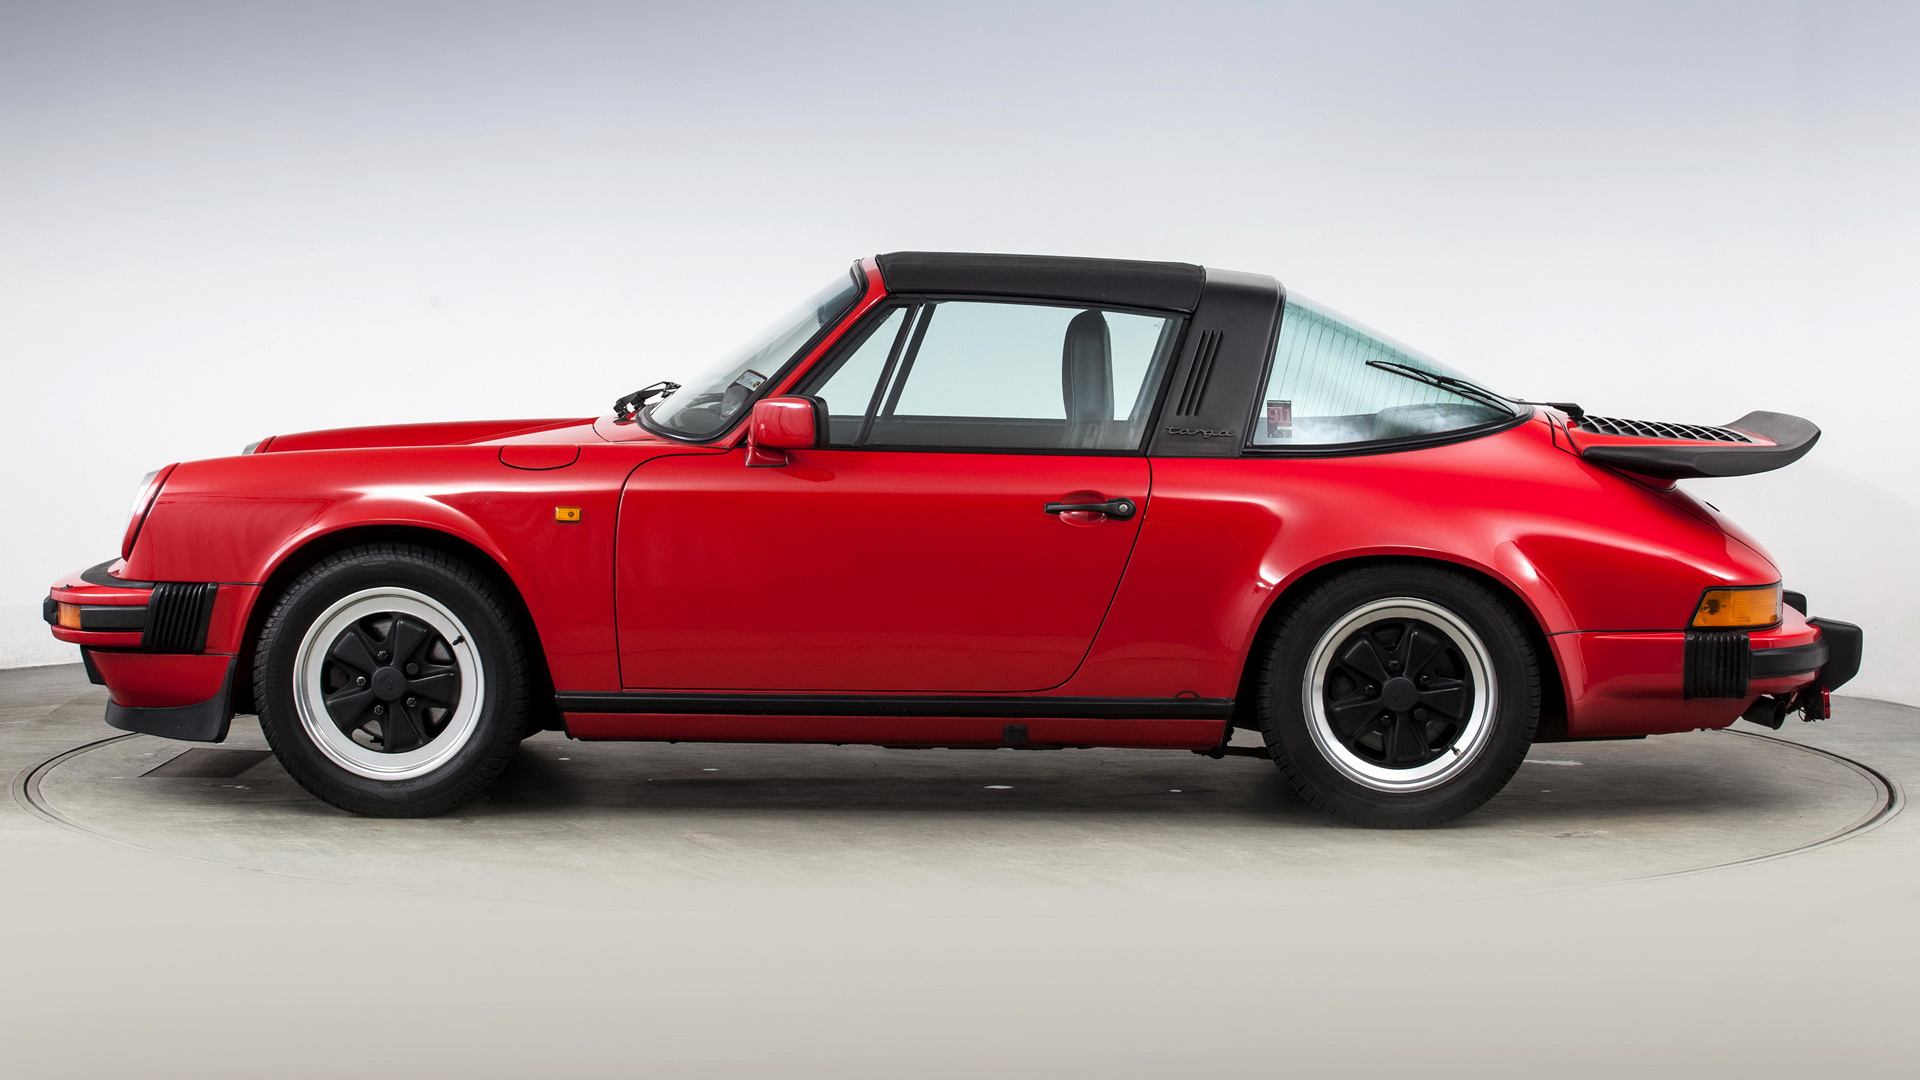 Porsche 911 Carrera Targa With Whale Tail 1984 Uk